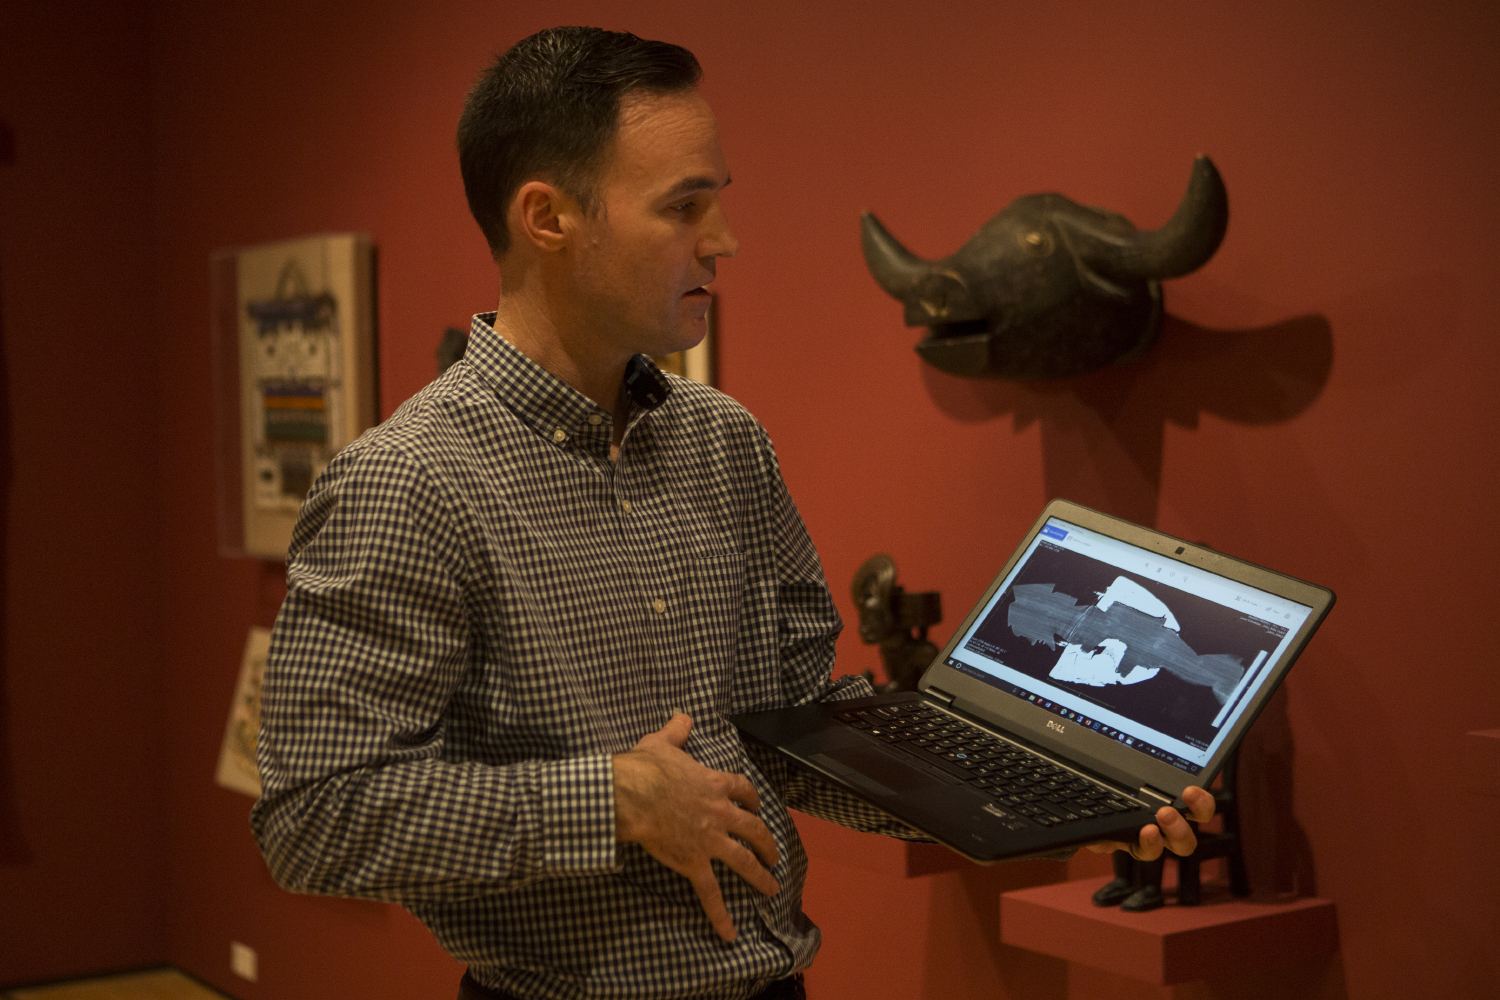 Cory Gundlach talks about his findings within works of African Art at the Stanley Museum of Art in the Iowa Memorial Union on February 19 2019. Using a CT scanner at University of Iowa Hospitals and Clinics, Gundlach scanned some of the works to see what might be hidden inside. (Grace Colton /The Daily Iowan)